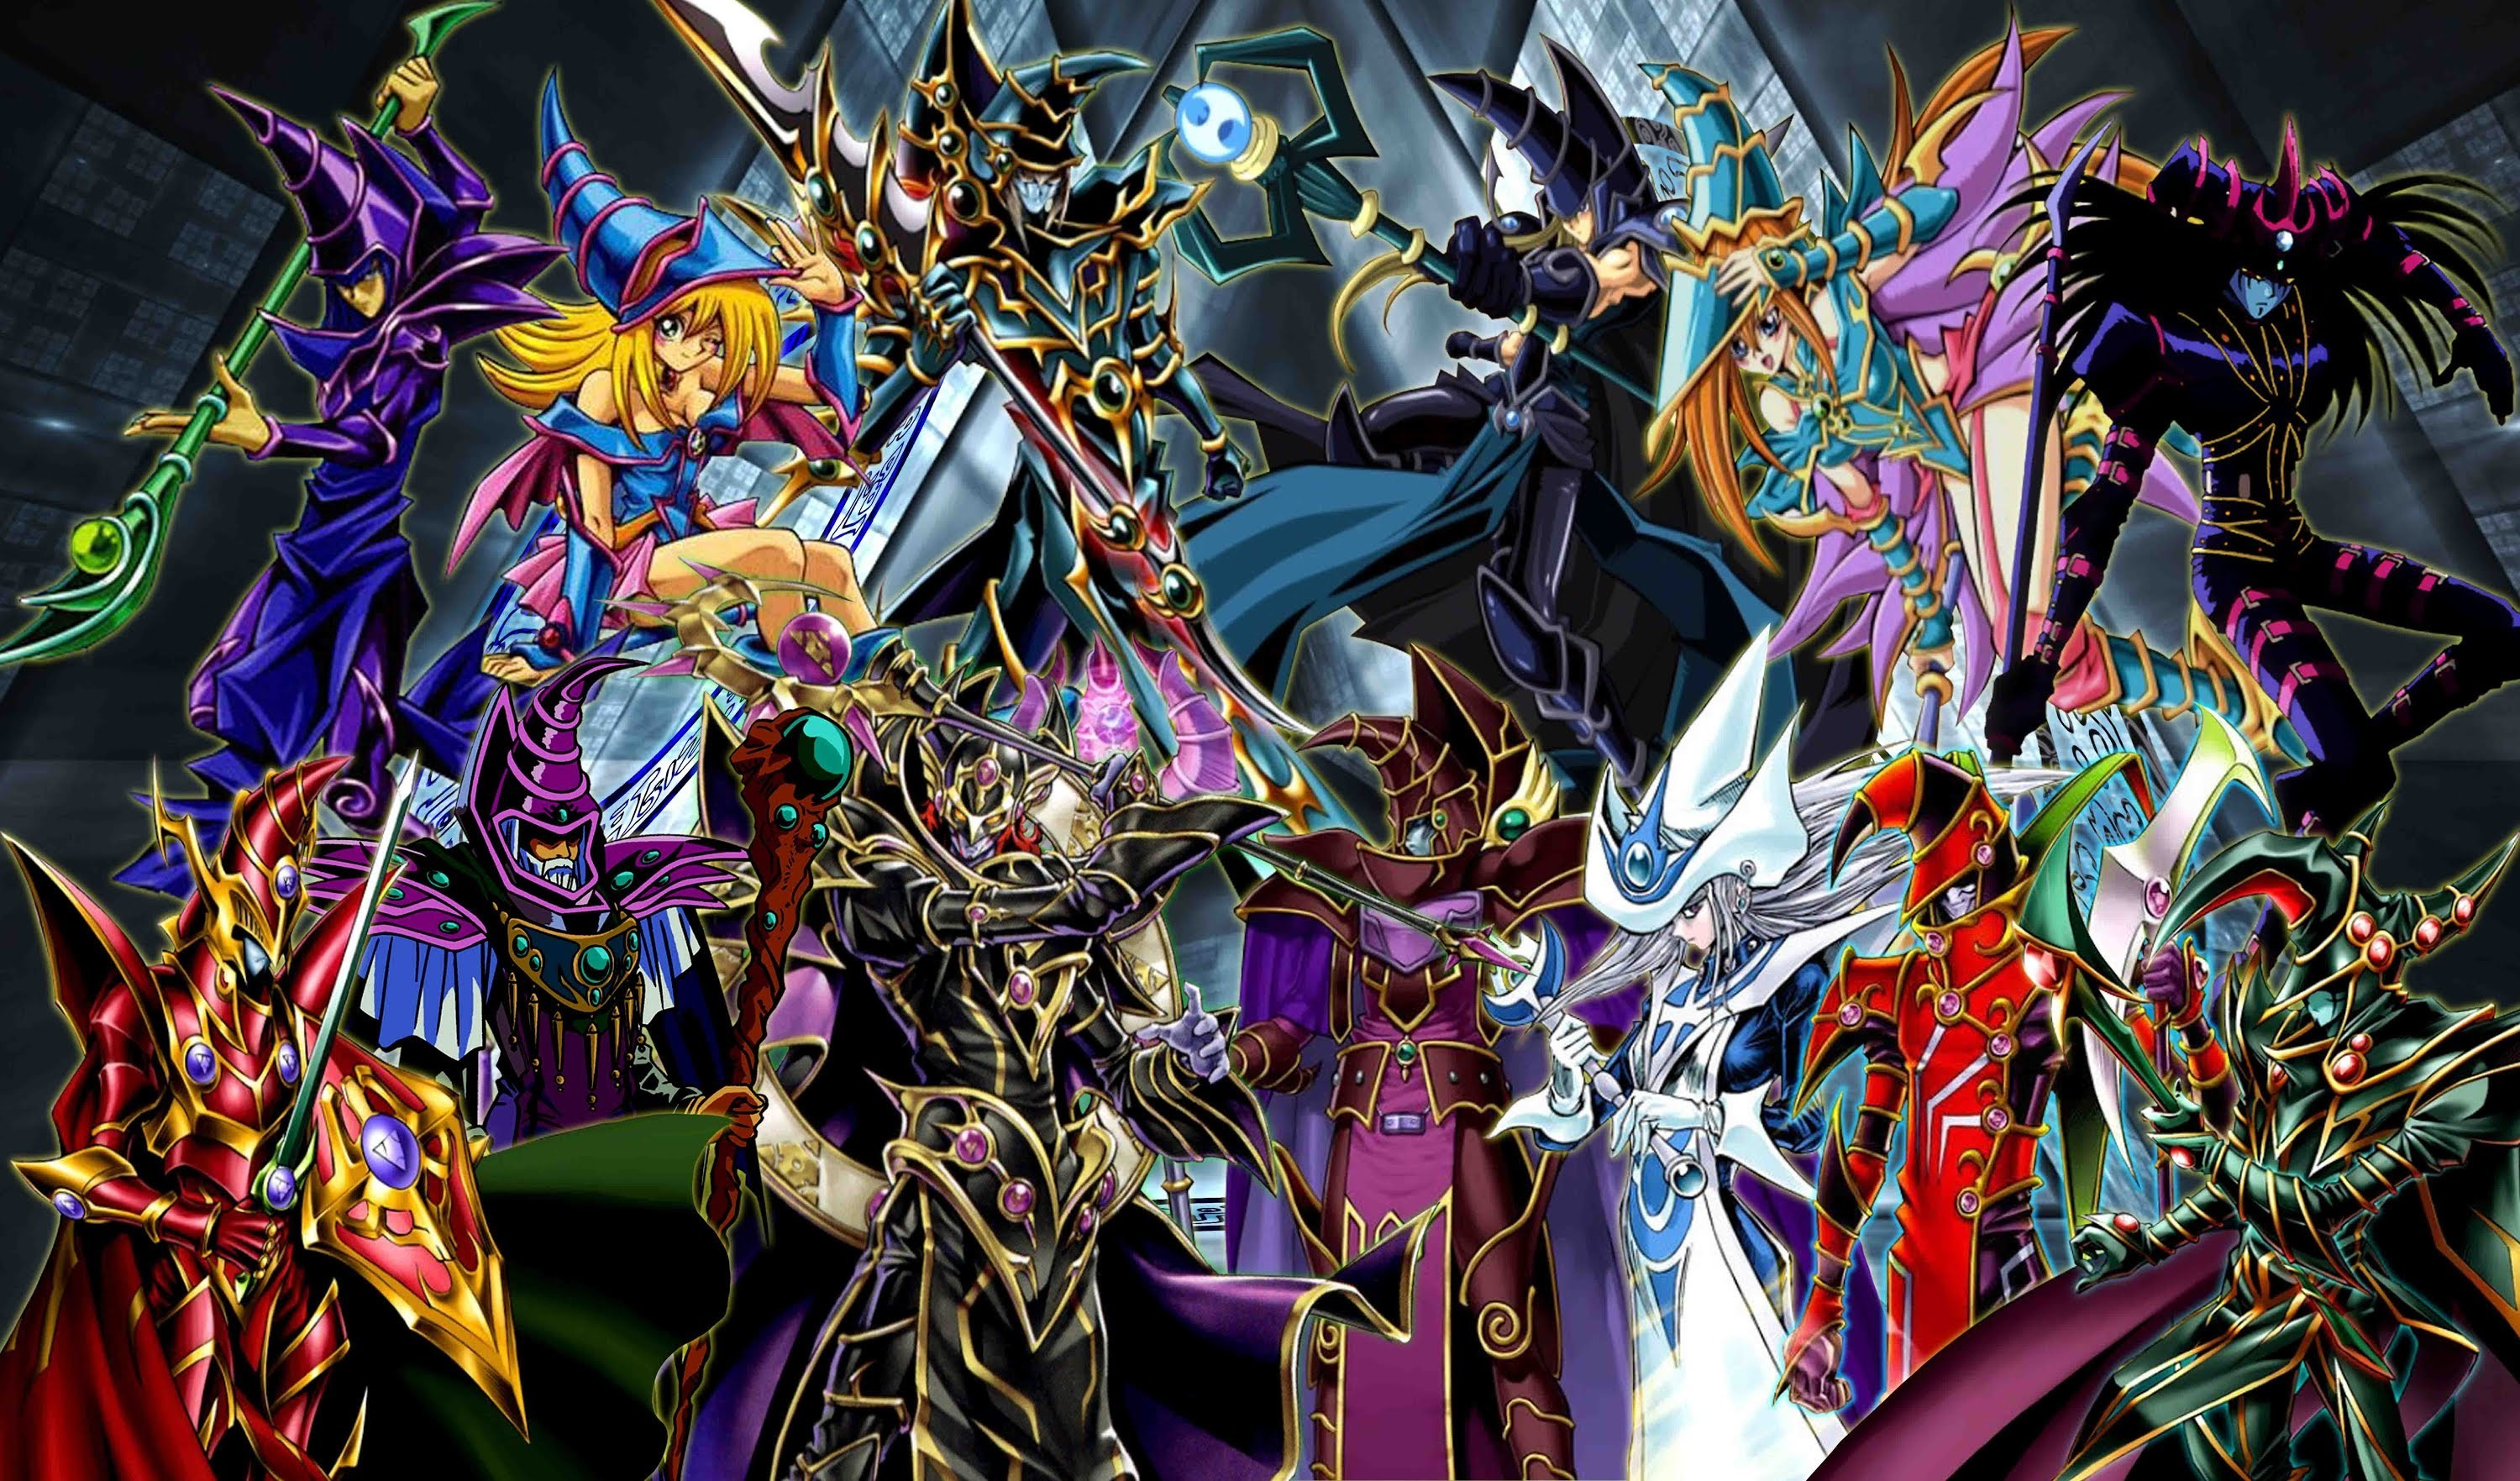 3000x1763 Yugioh Dark MagicianSpellcaster Deck January 2014